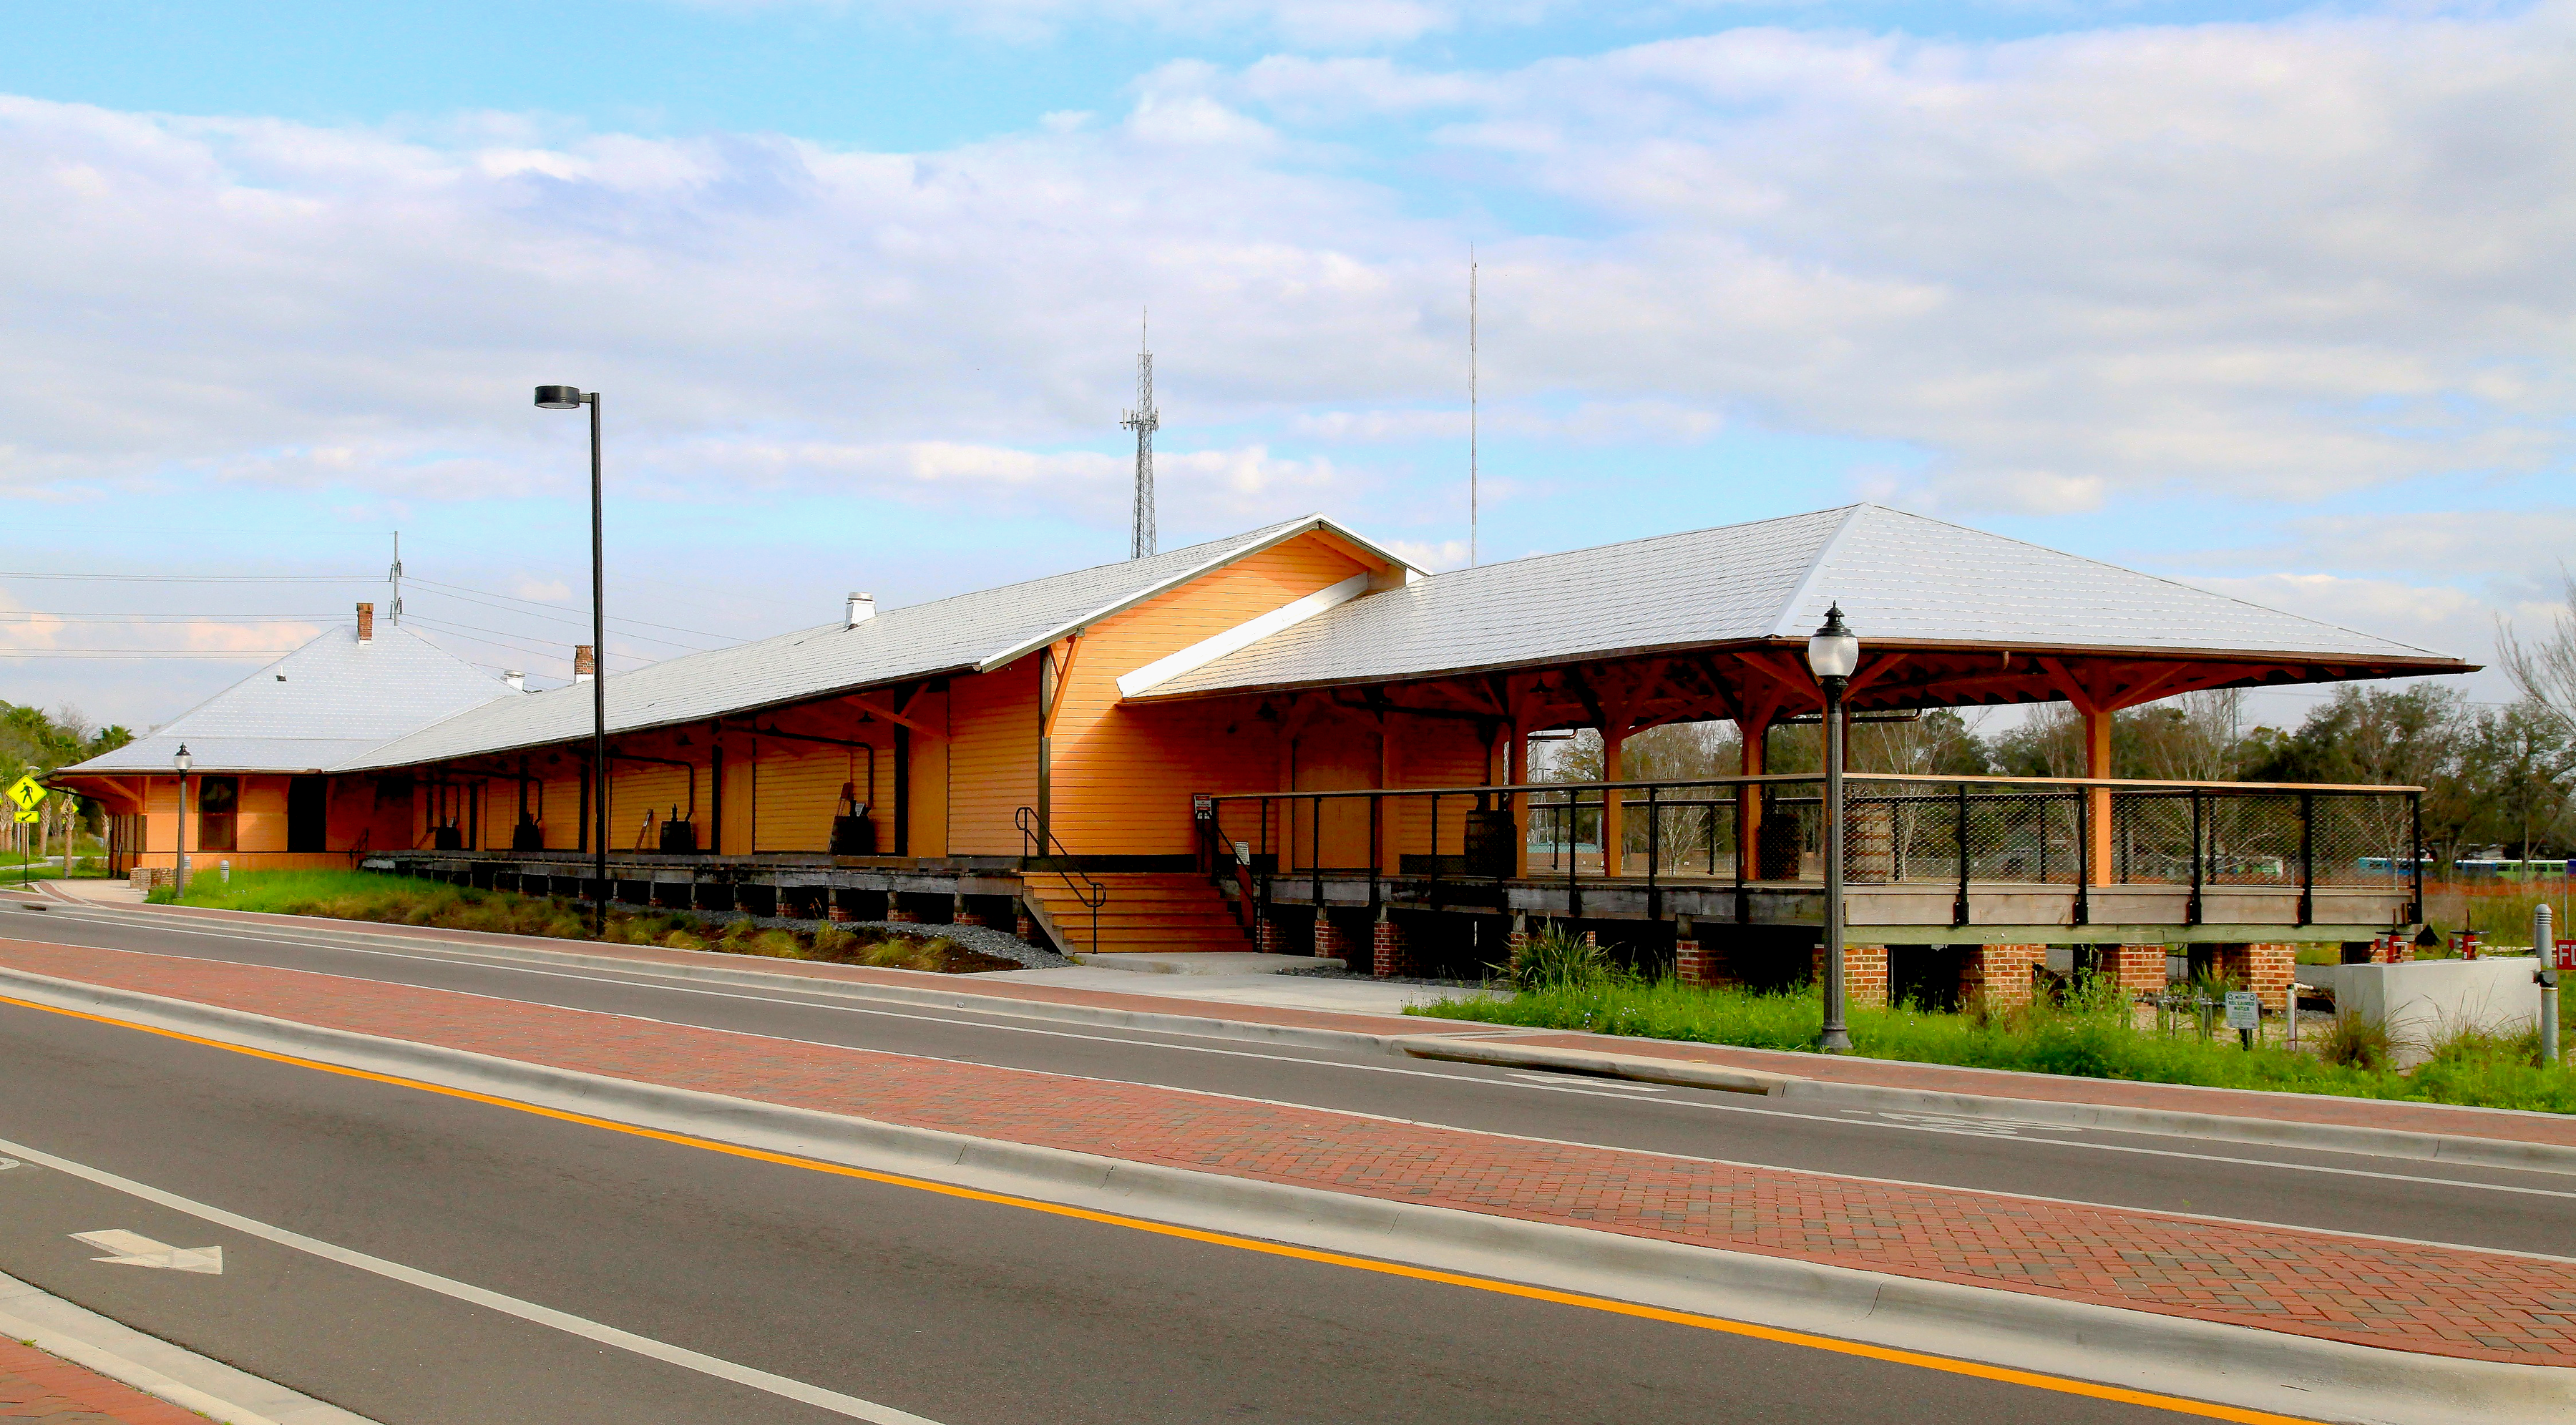 depot-north-elevation-Matt-Dube.png